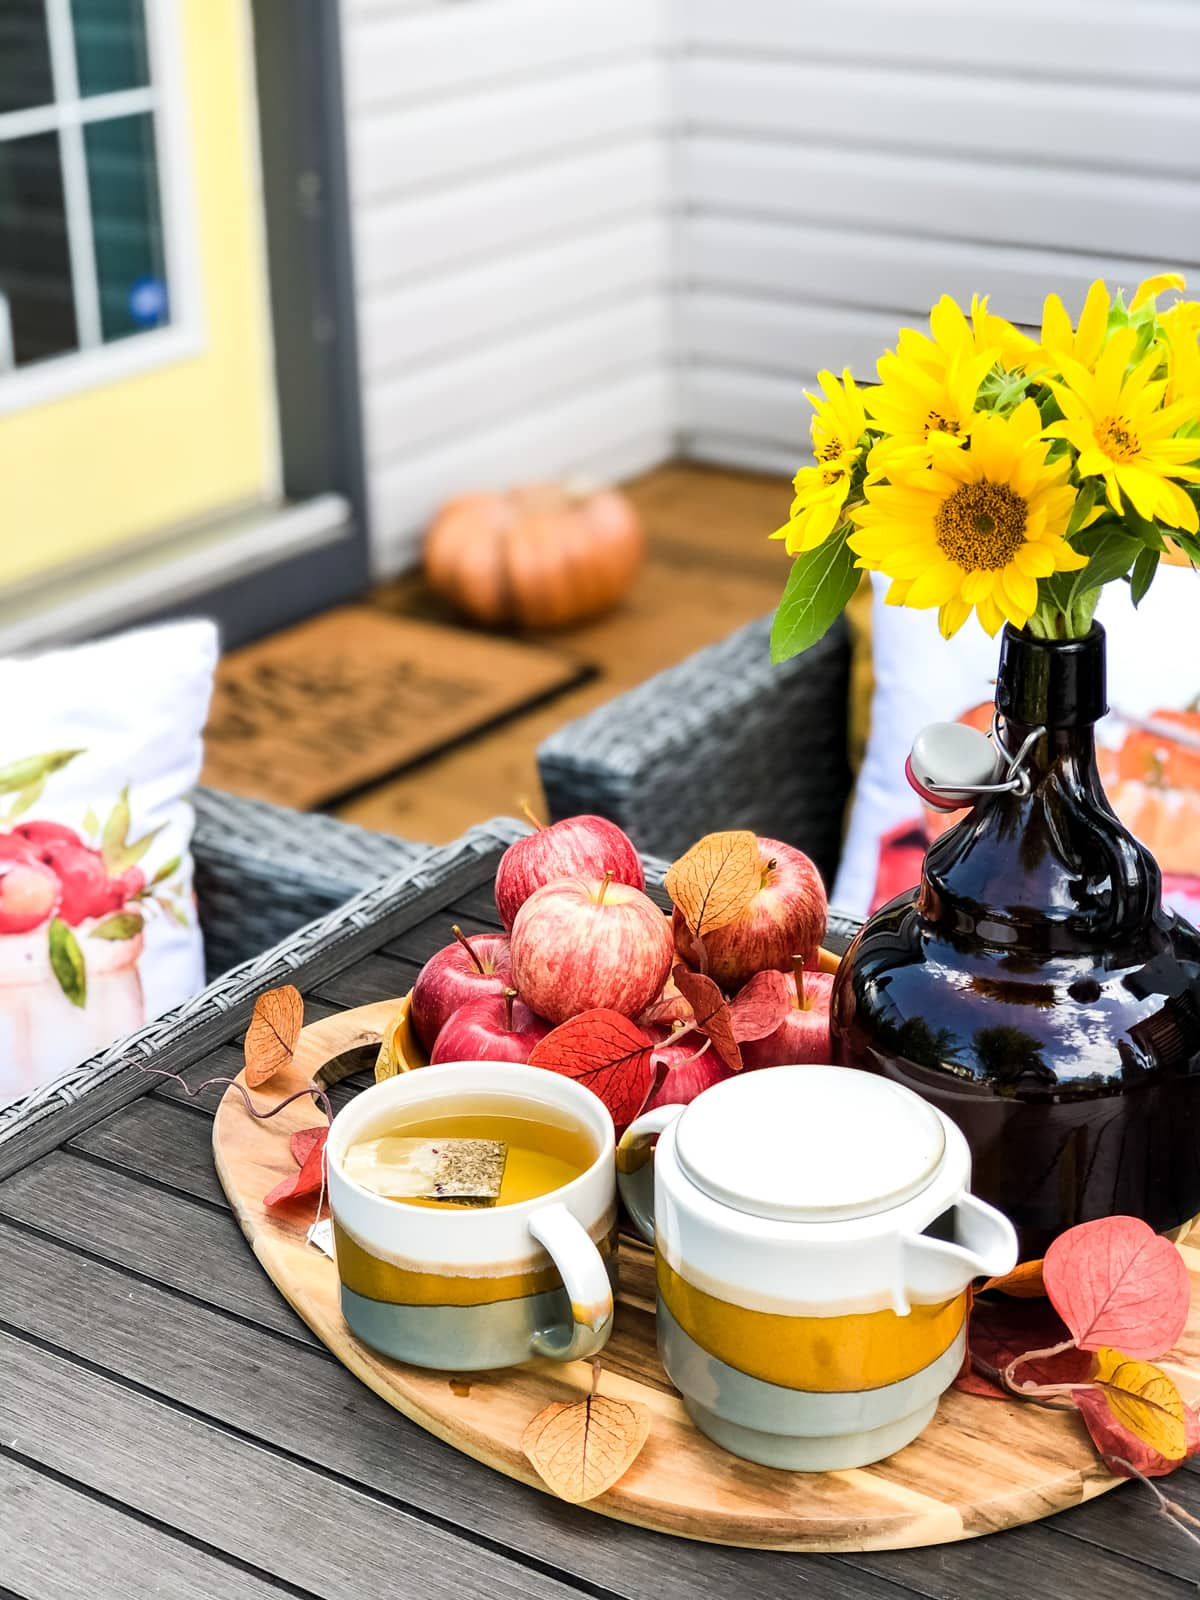 A tray of apples, sunflowers and tea